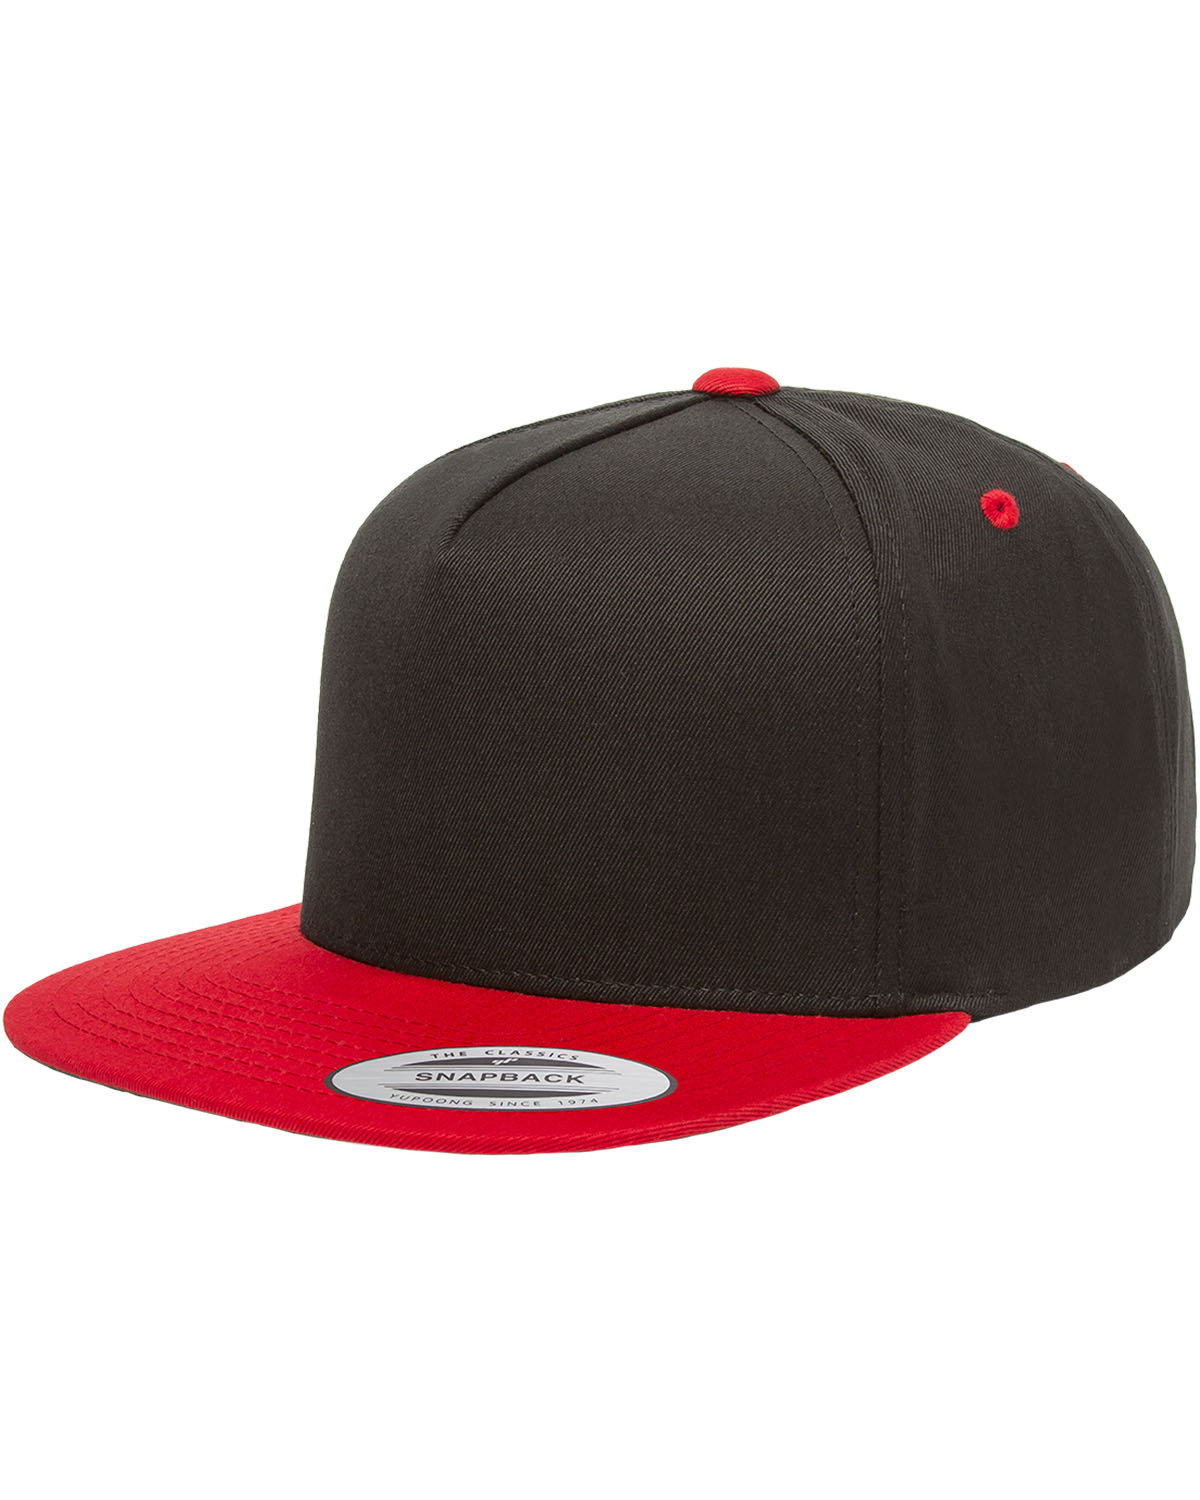 Yupoong Adult 5-Panel Cotton Twill Snapback Cap BLACK/ RED